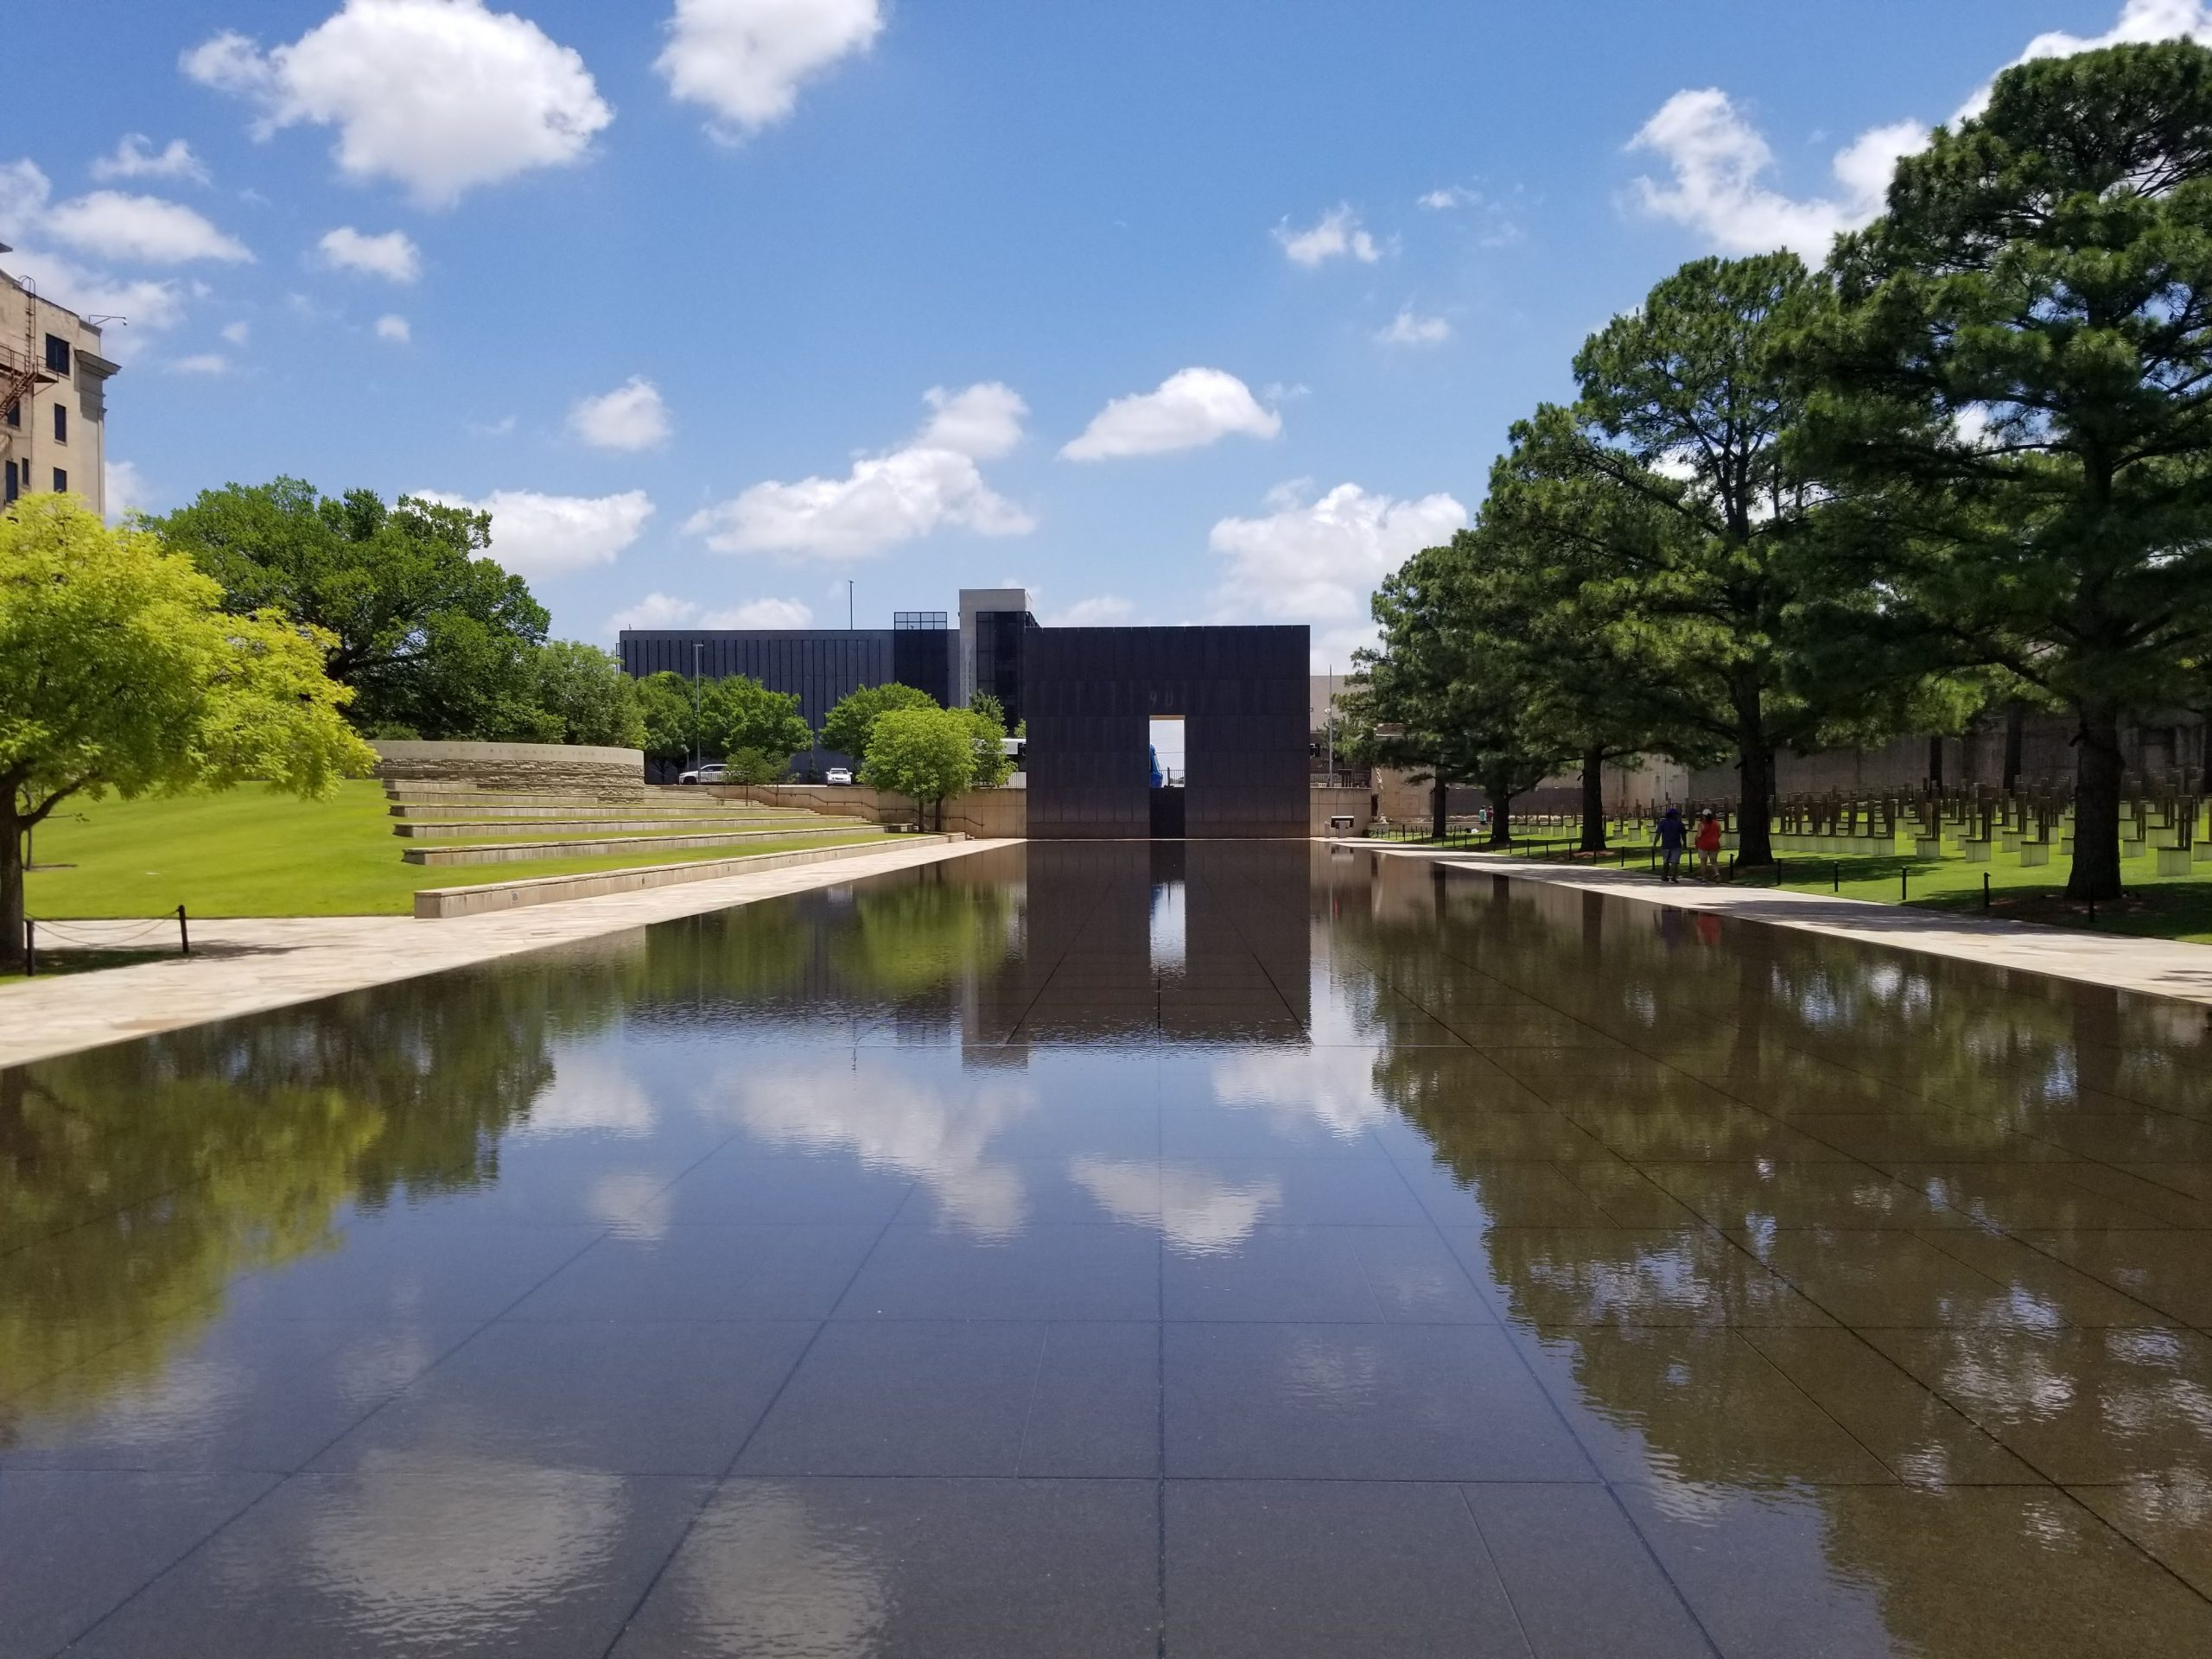 The pool occupies what was once N.W. Fifth Street. Here, a shallow depth of gently flowing water helps soothe wounds, with calming sounds providing a peaceful setting for quiet thoughts. The placid surface creates the reflection of someone changed forever by their visit to the Memorial.